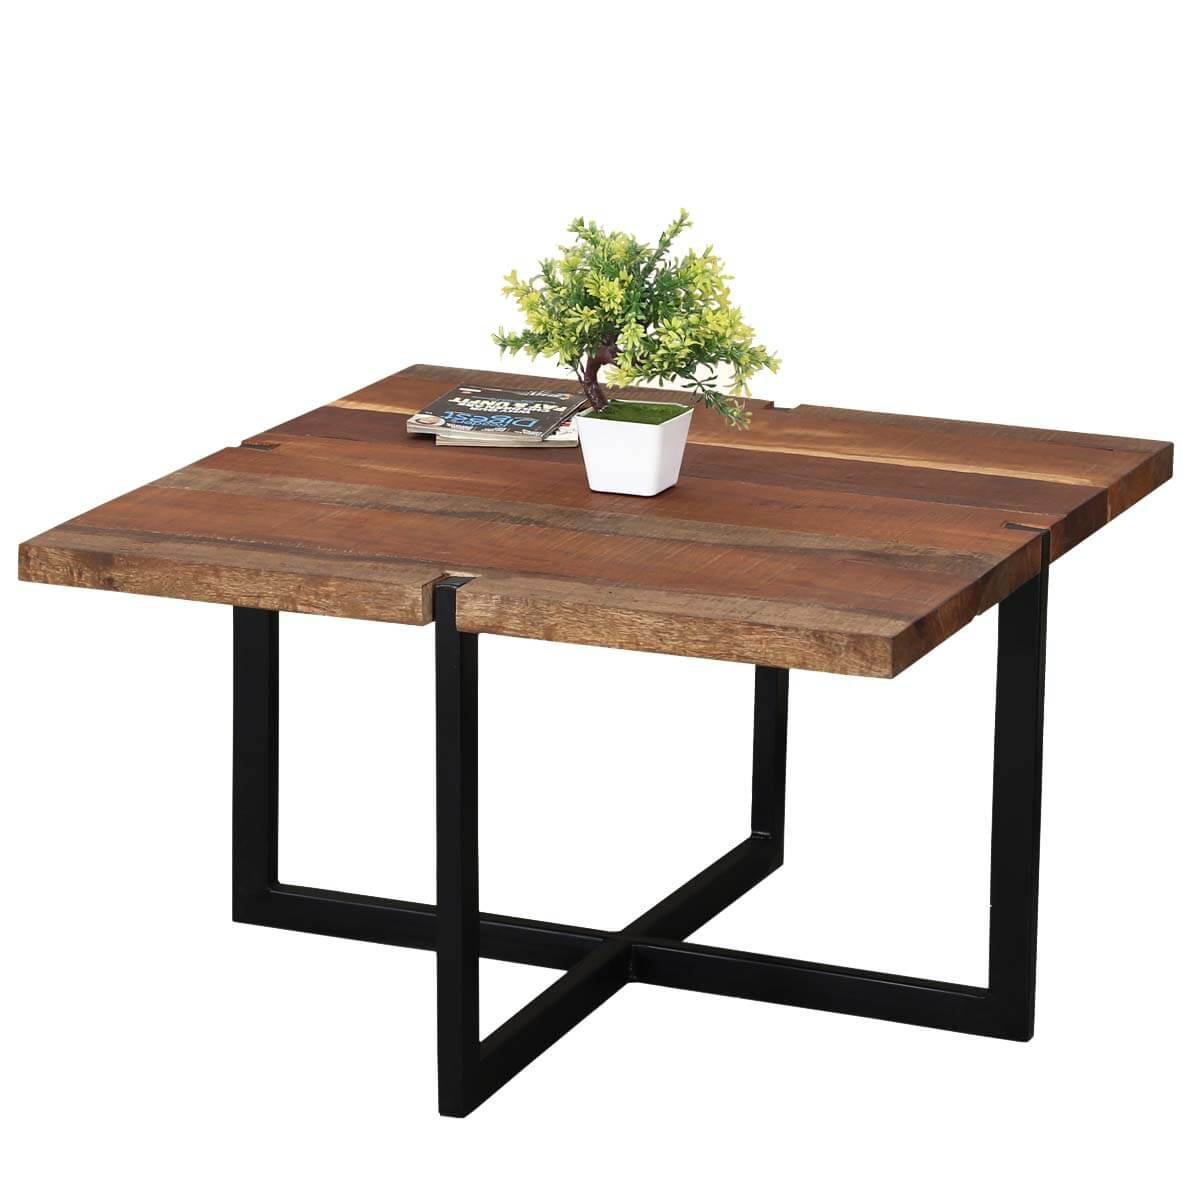 Suffolk Simplicity Reclaimed Wood Square Industrial  Coffee Table